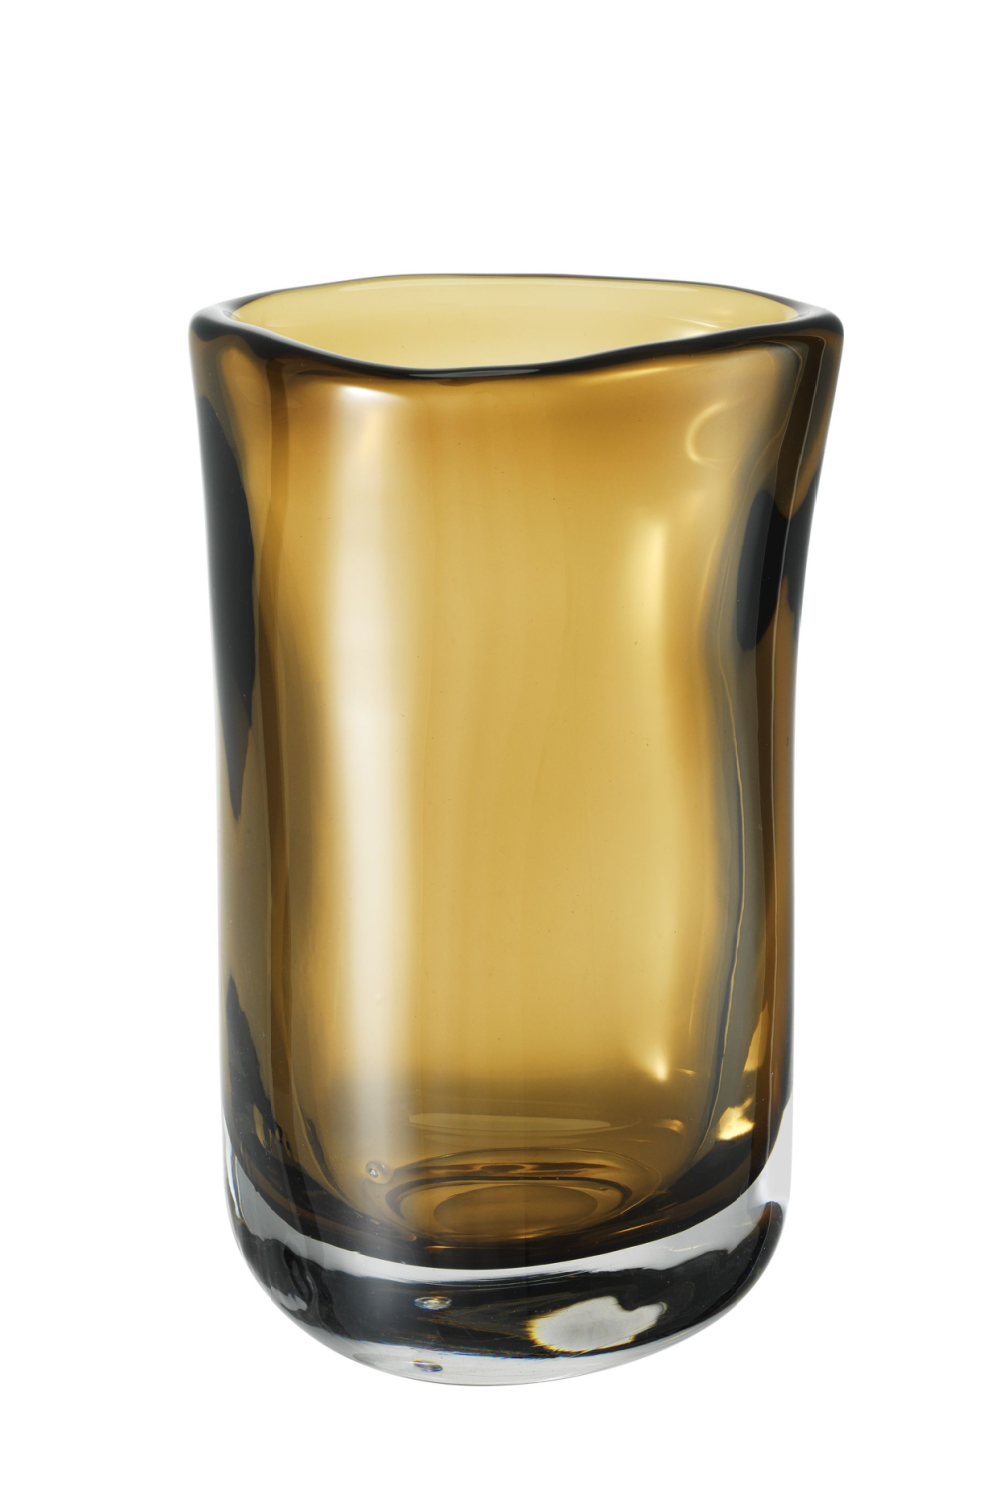 Hand Blown Glass Vase | Eichholtz Corum M | #1 Eichholtz Retailer